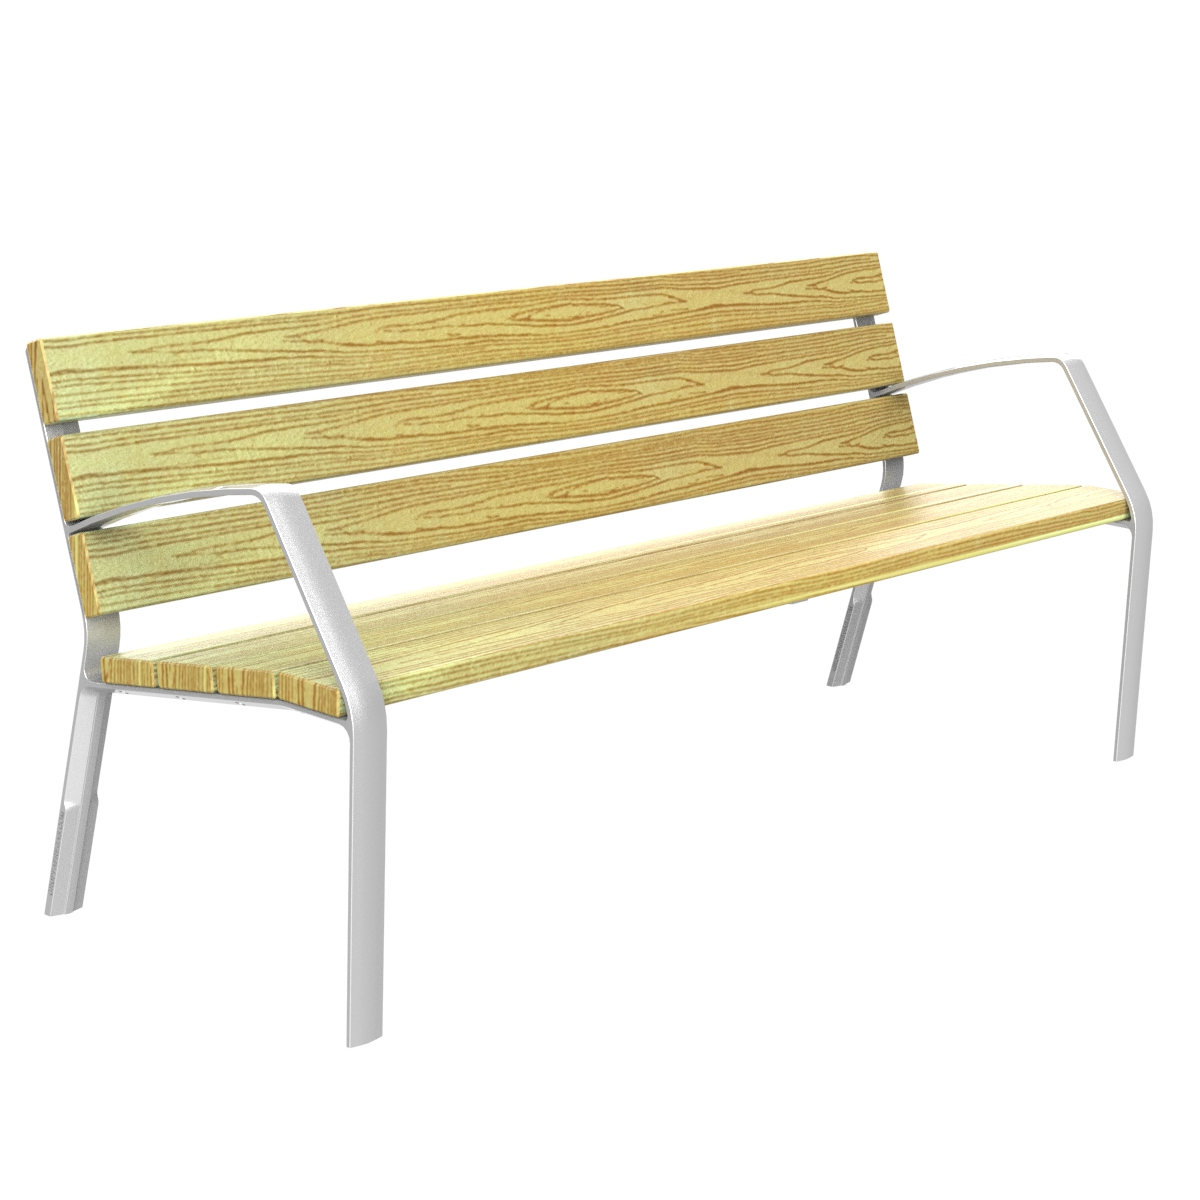 Admirable Wood Bench With Aluminium Legs Modo10 1800 Pc Gmtry Best Dining Table And Chair Ideas Images Gmtryco